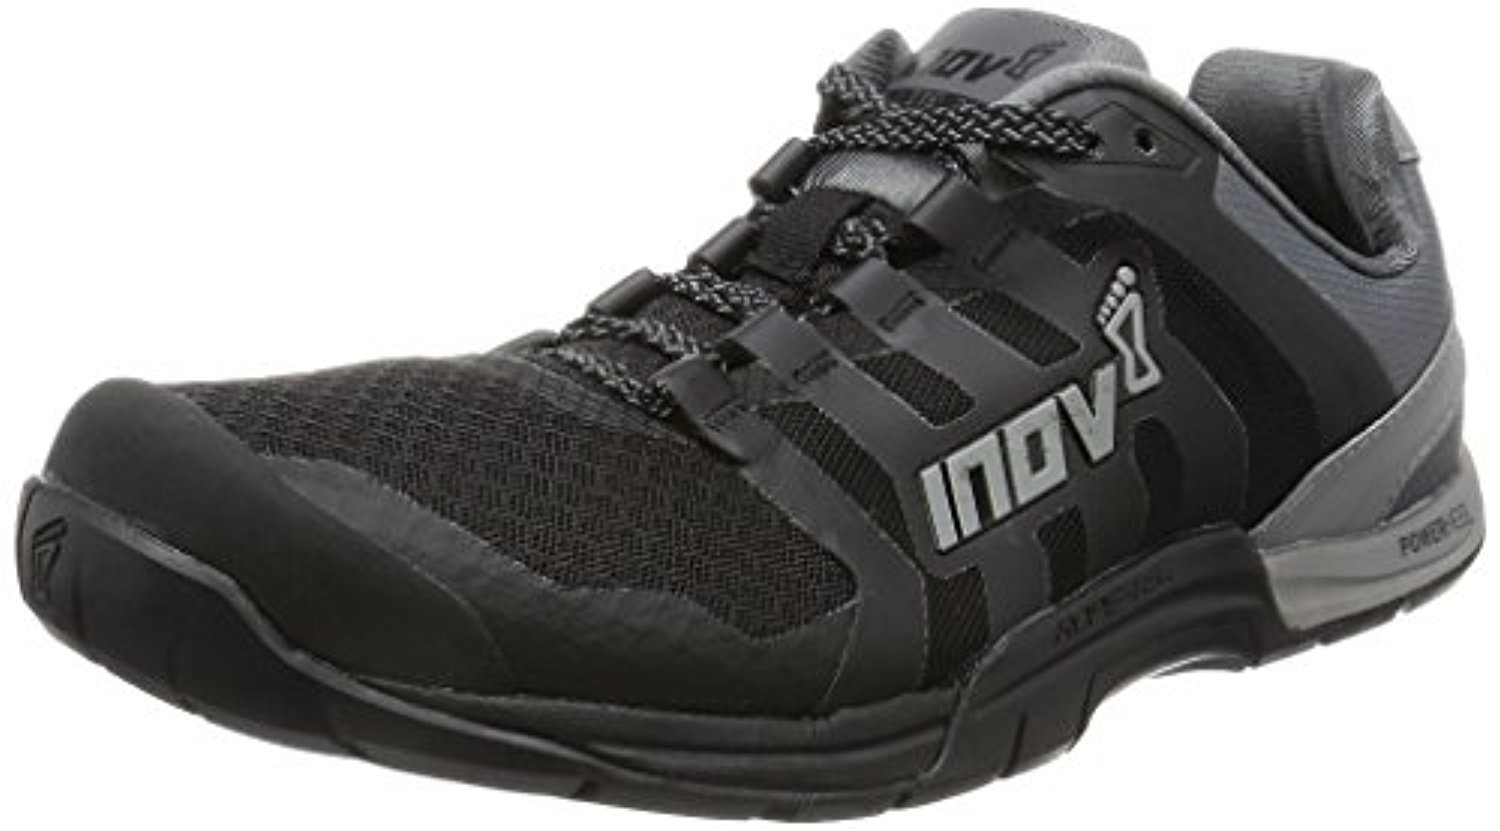 Inov8 Men's F-Lite 235 V2 Cross-Trainer Shoes & Workout Visor Bundle B074P91SWL M12.5|Black / Grey